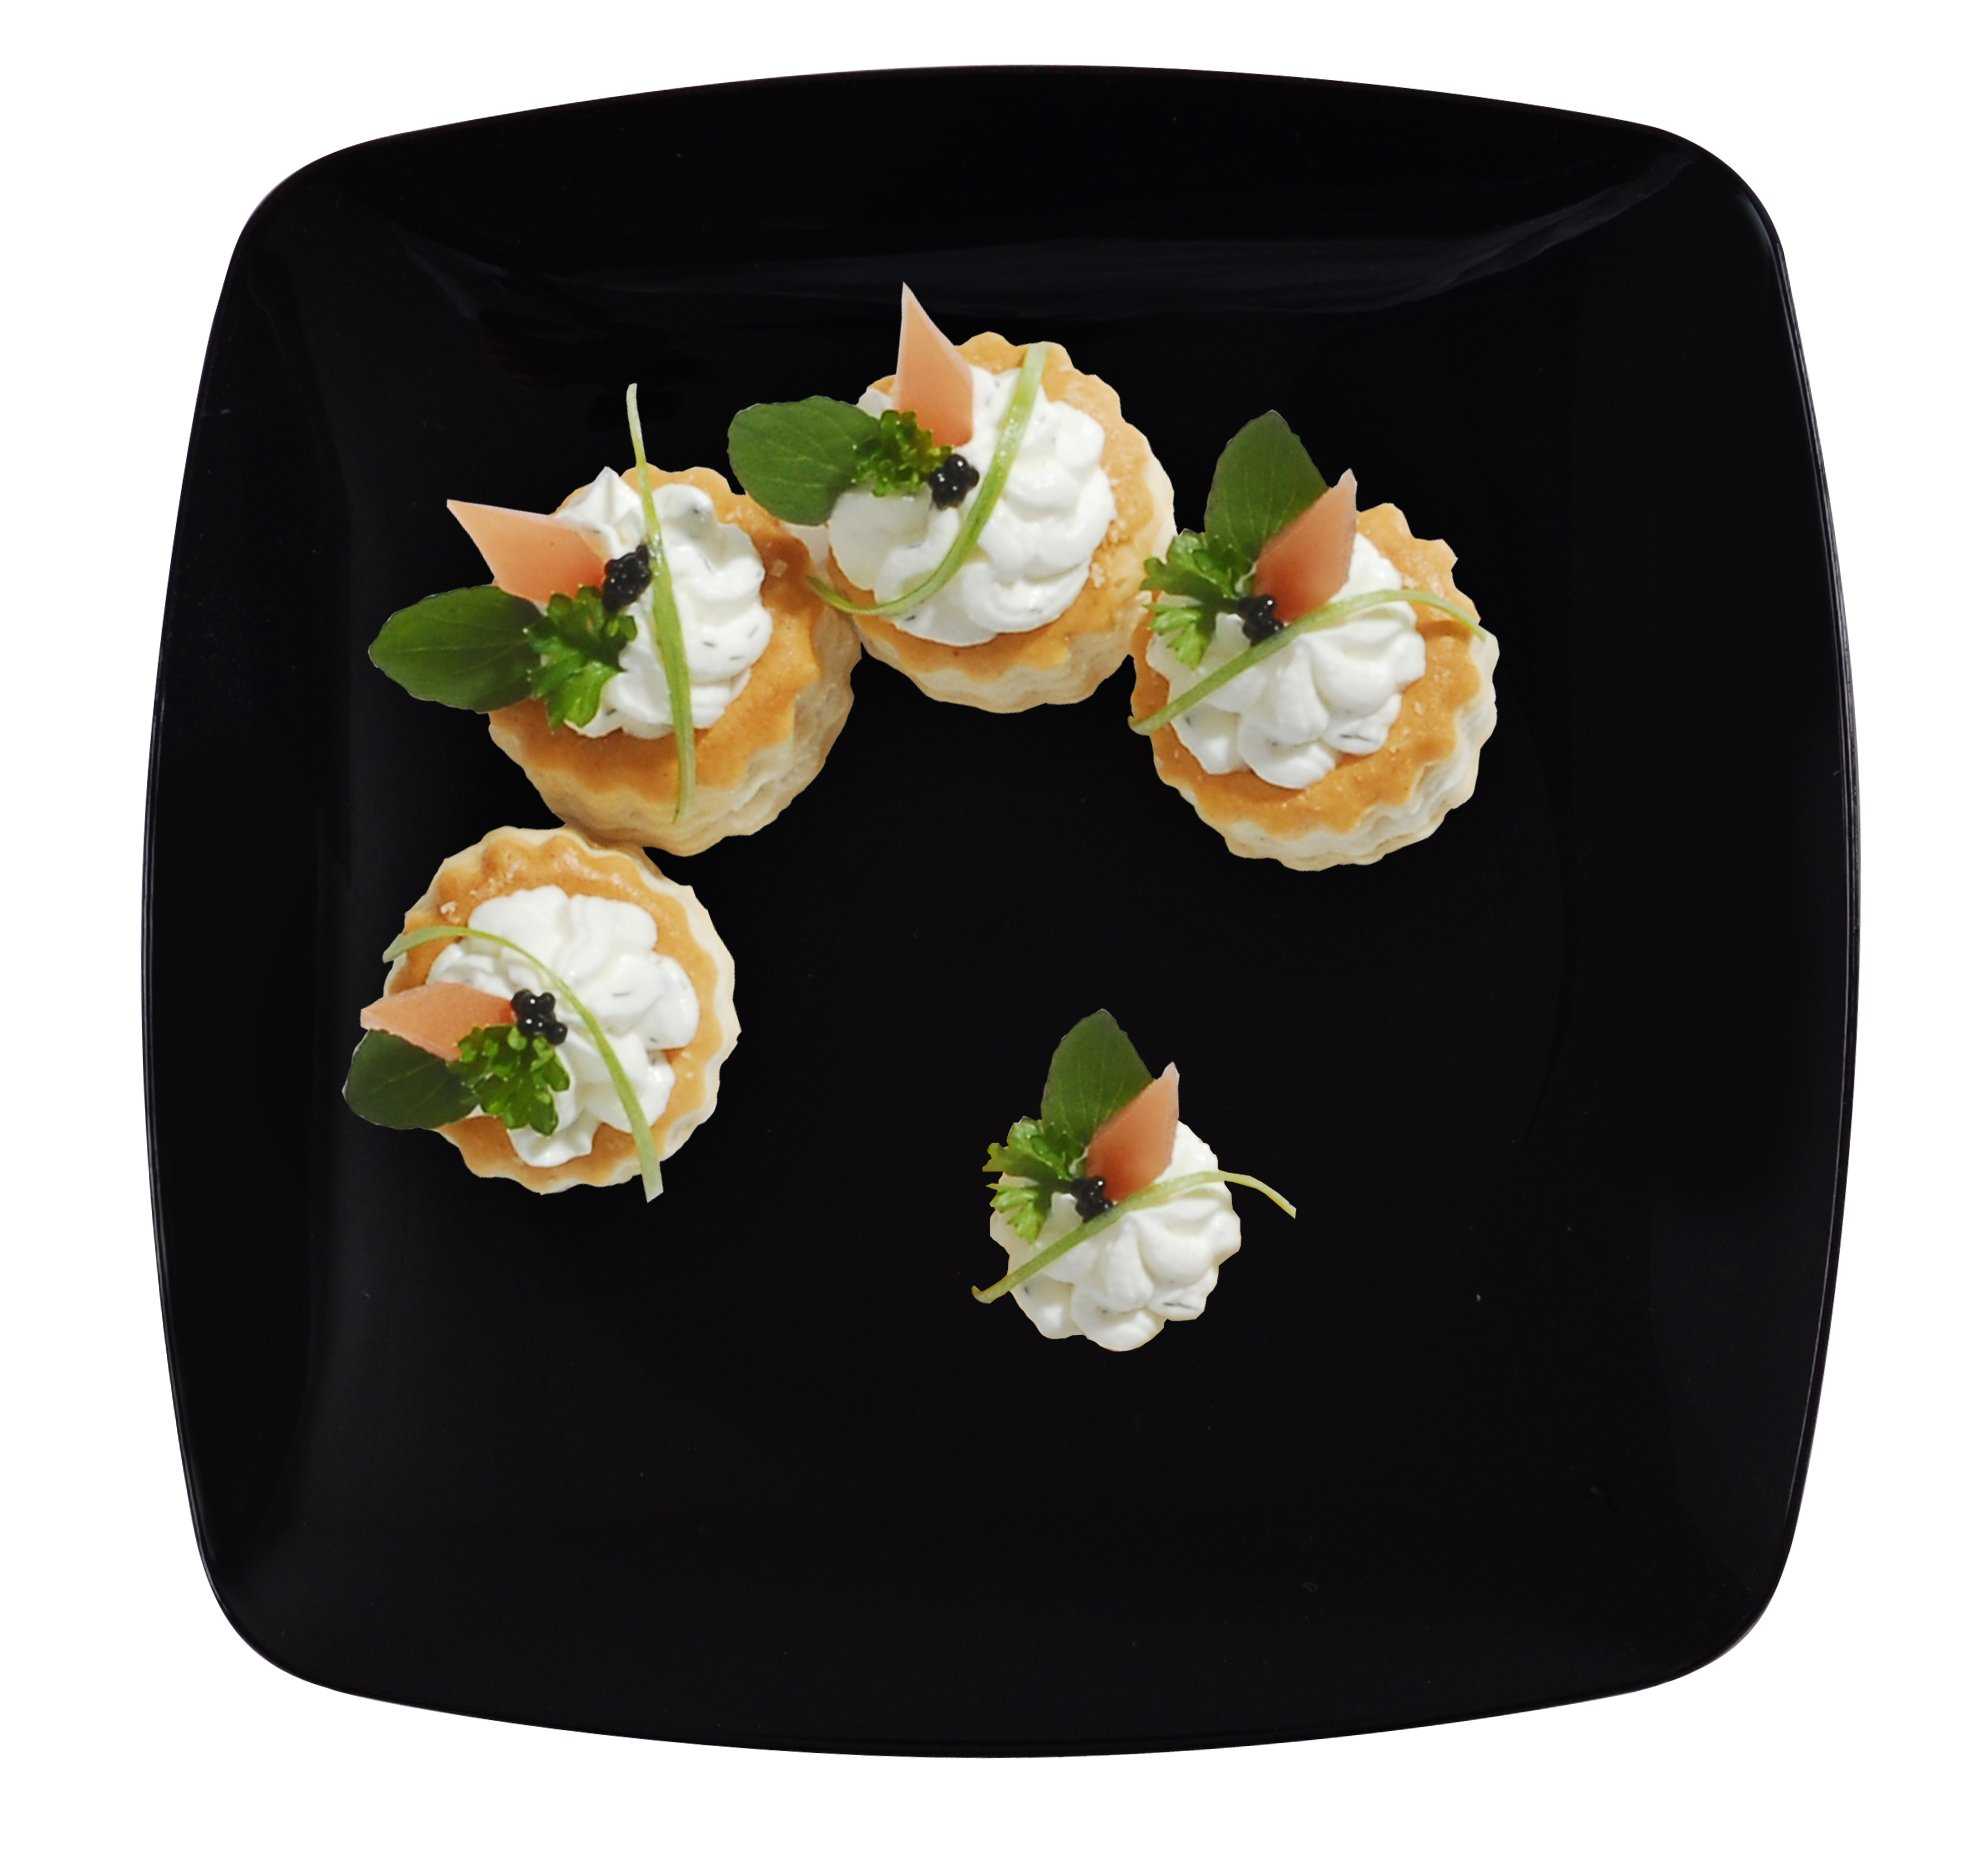 Fineline Settings Renaissance Black Rounded Square China-Like 10'' Plate  120 Pieces